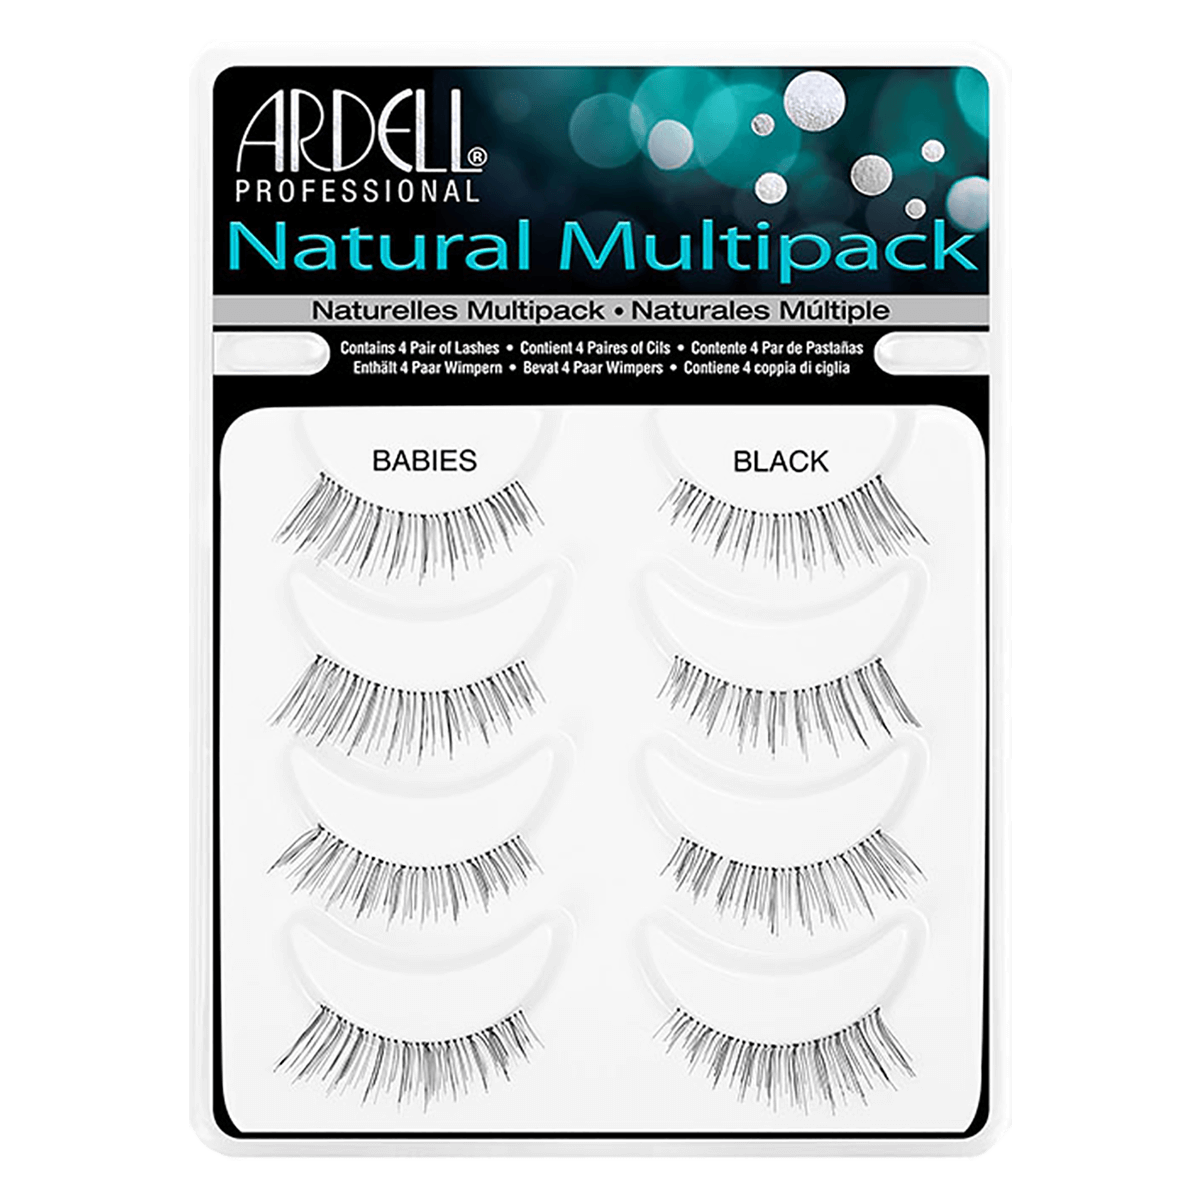 Ardell Natural Lashes Babies Black Multipack